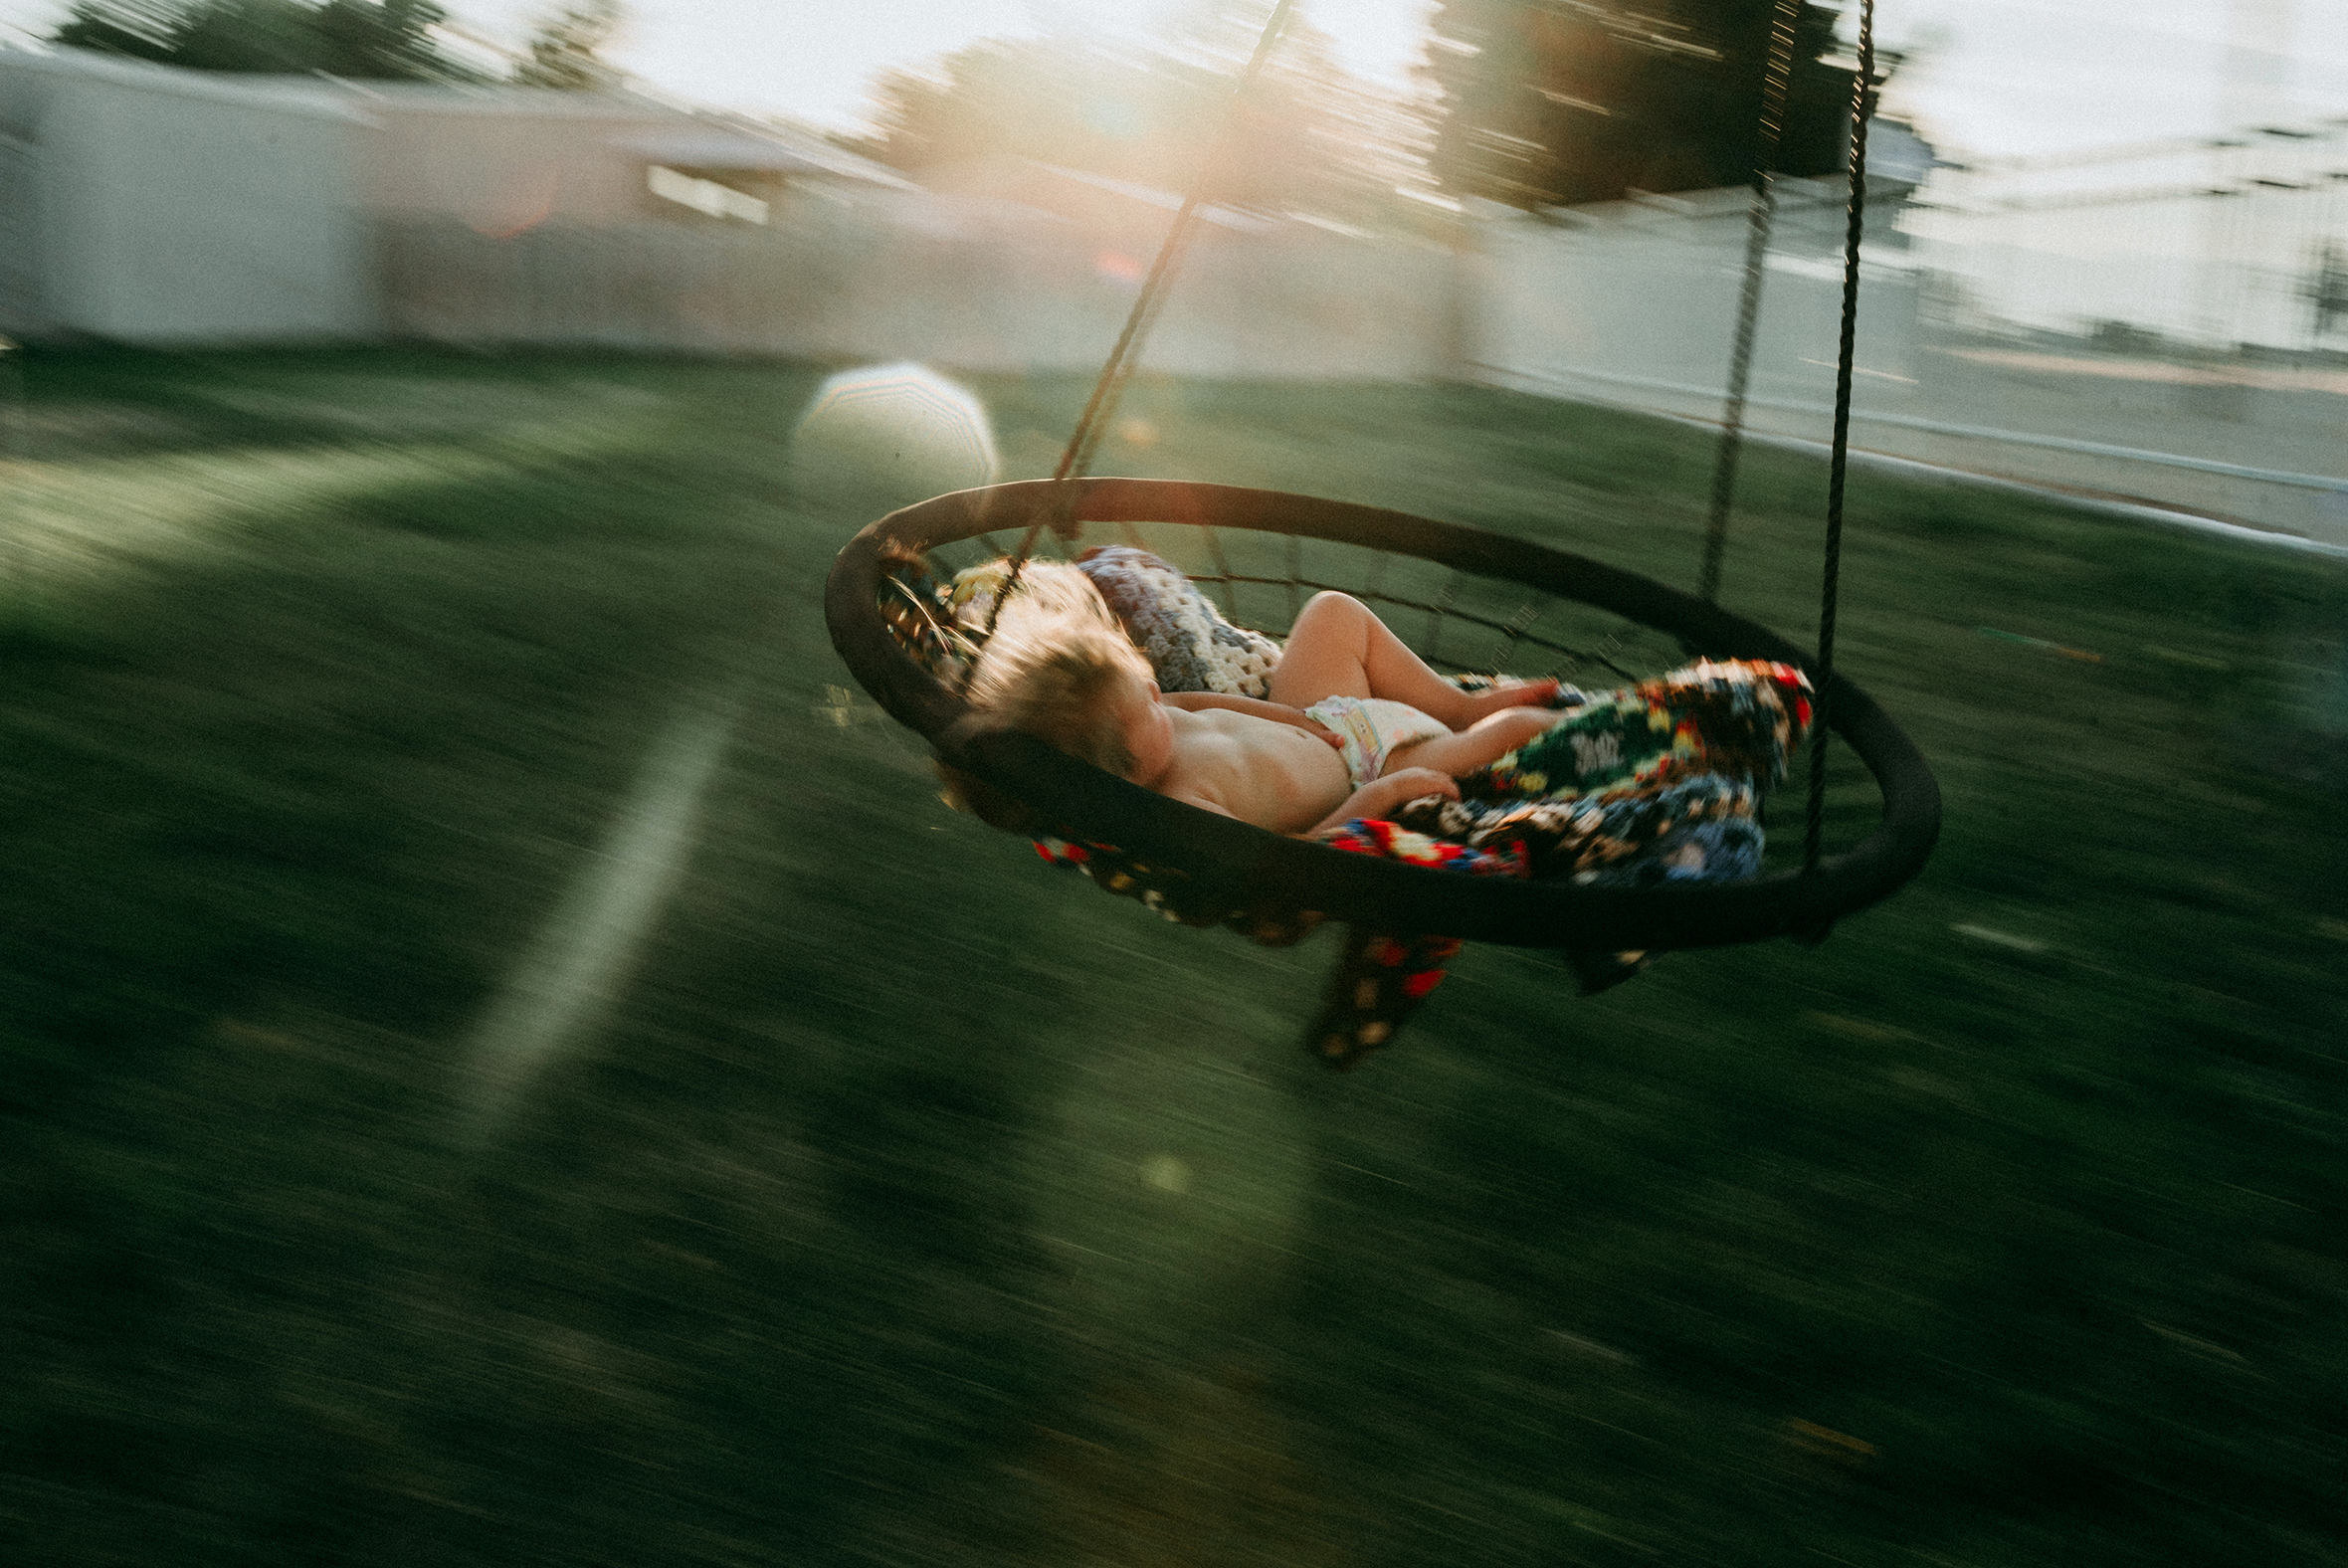 panning image, child riding hammock, blurred, motion, lifestyle kid picture, summertime